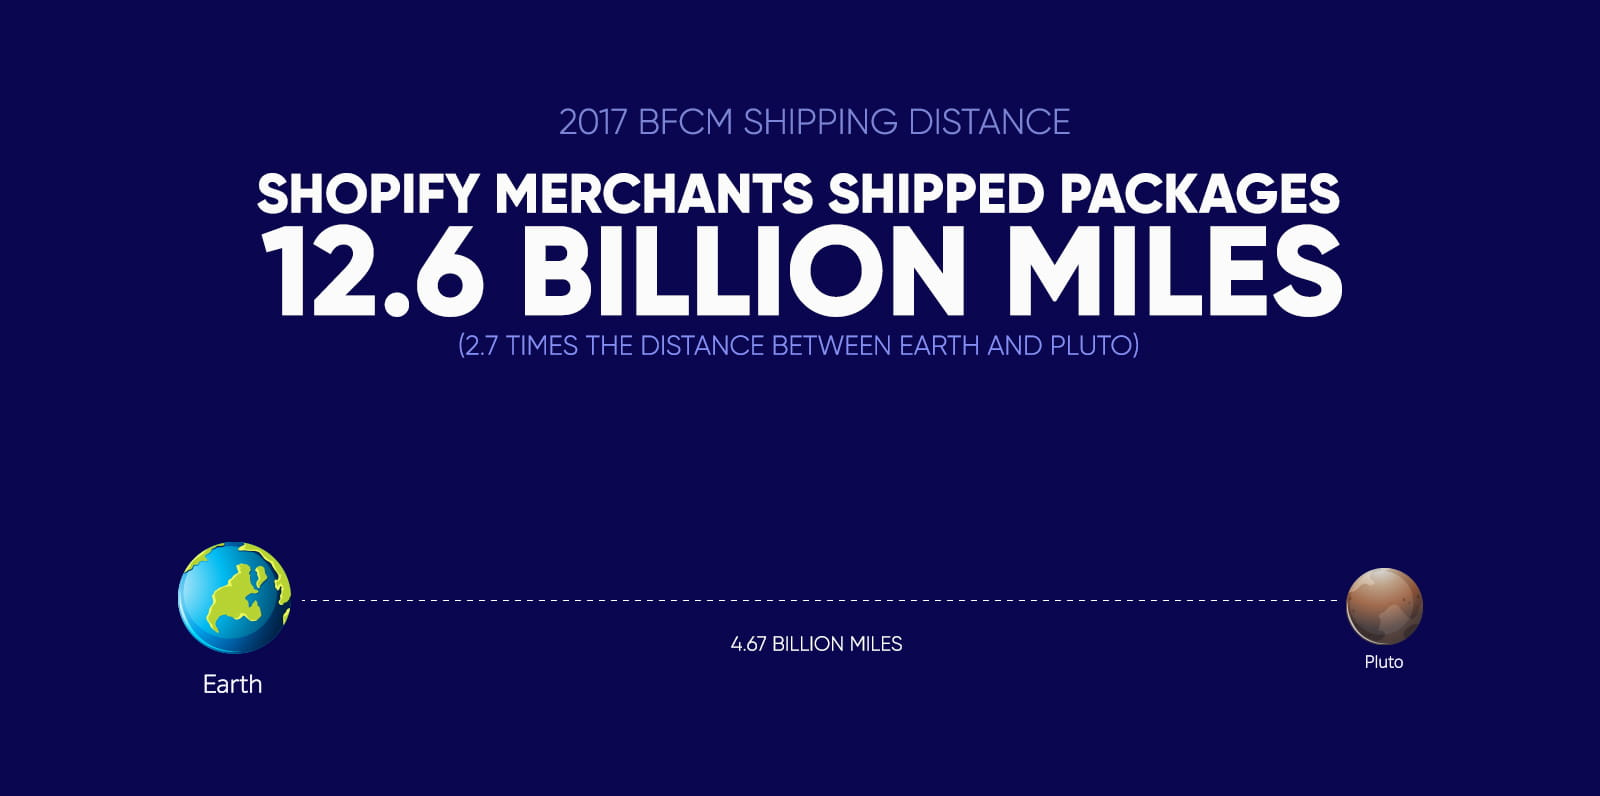 shopify and BFCM